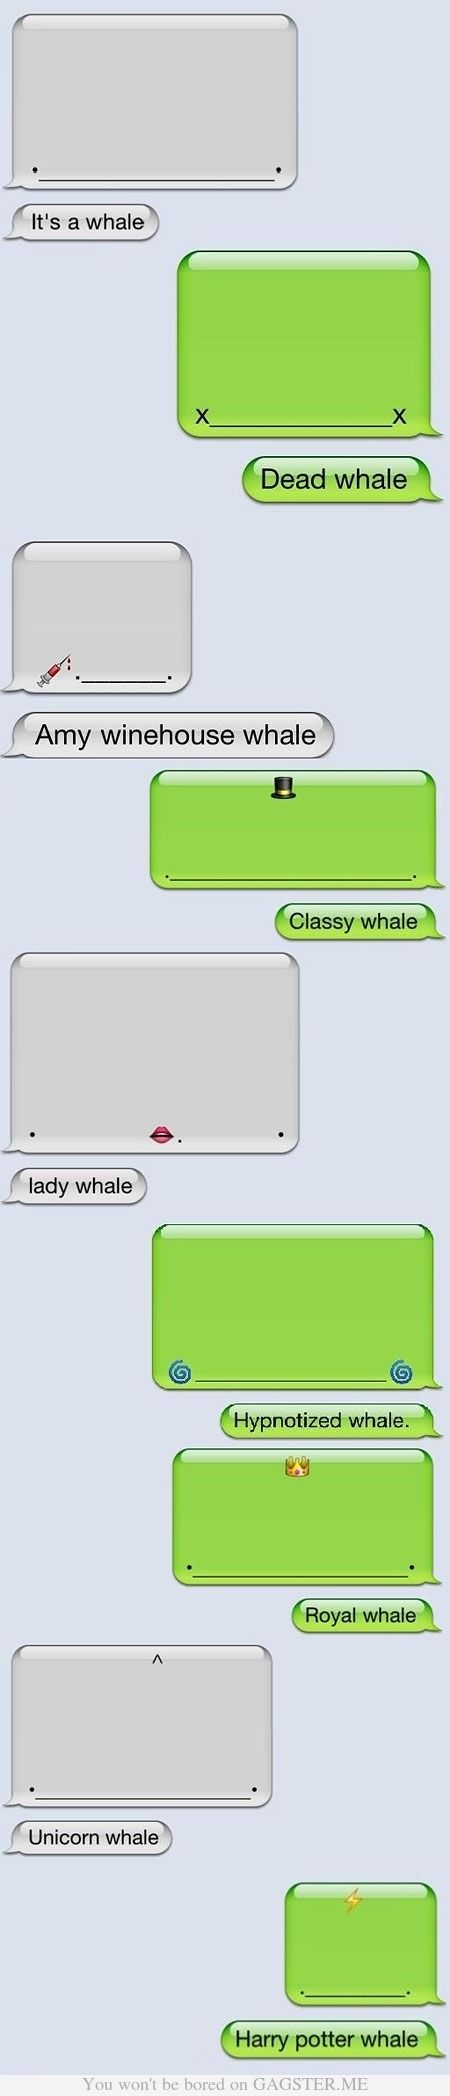 @StyleSpaceandStuff.Blogspot.com Williams I see you posted something about whales earlier. THIS MADE ME THINK OF YOU!